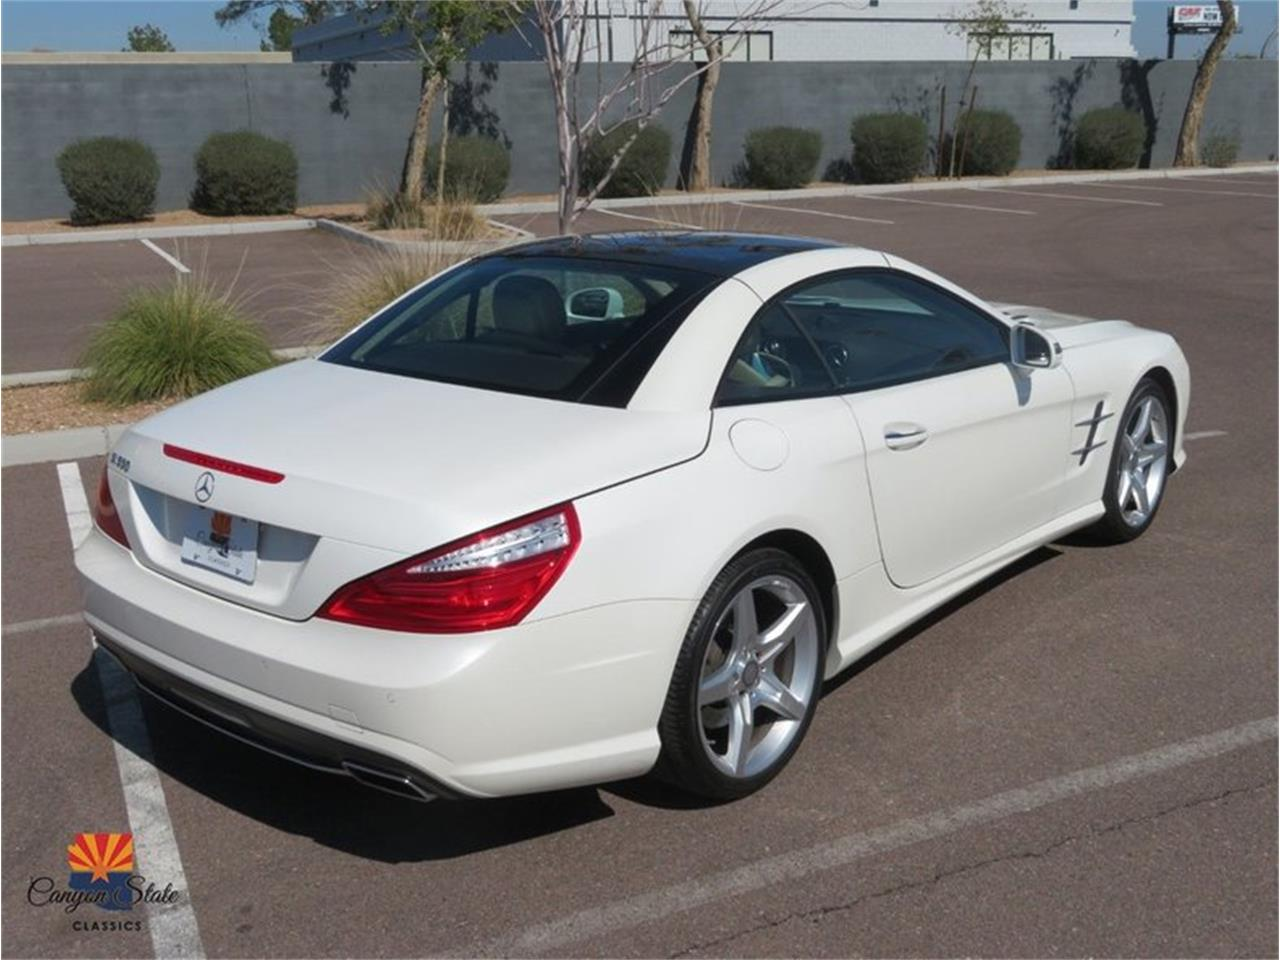 2013 Mercedes-Benz SL-Class for sale in Tempe, AZ – photo 71